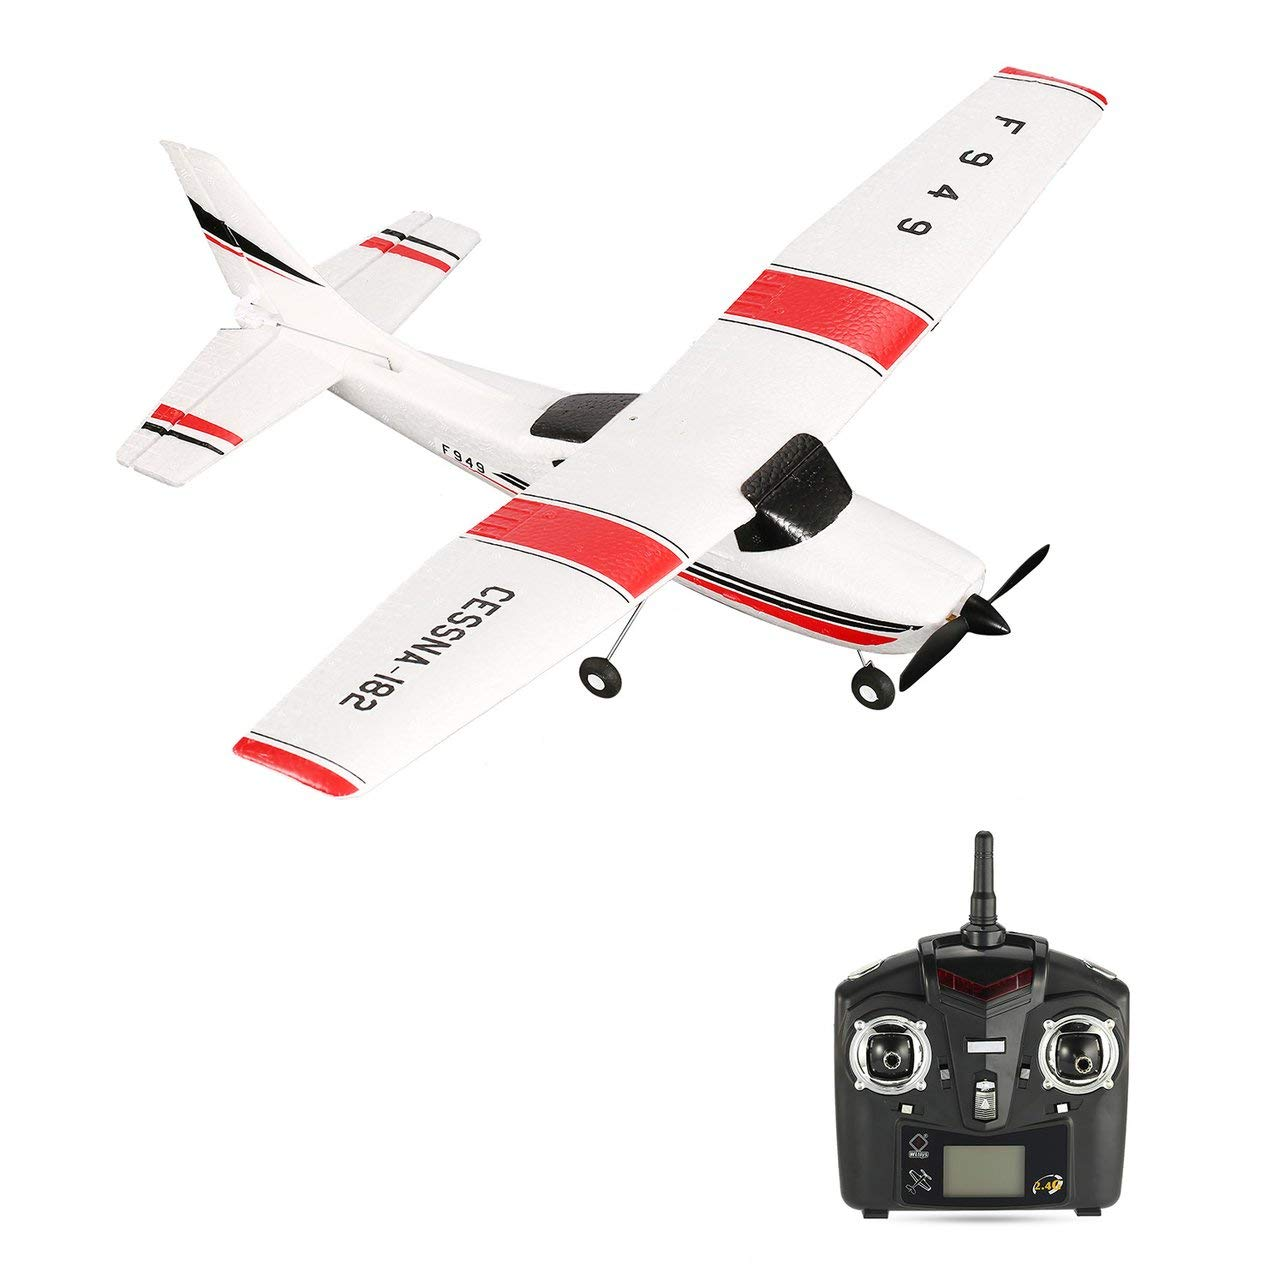 WLtoys F949 3CH 2.4GHz RC Airplane Fixed Wing RTF CESSNA-182 Plane Drone Toy WOSOSYEYO